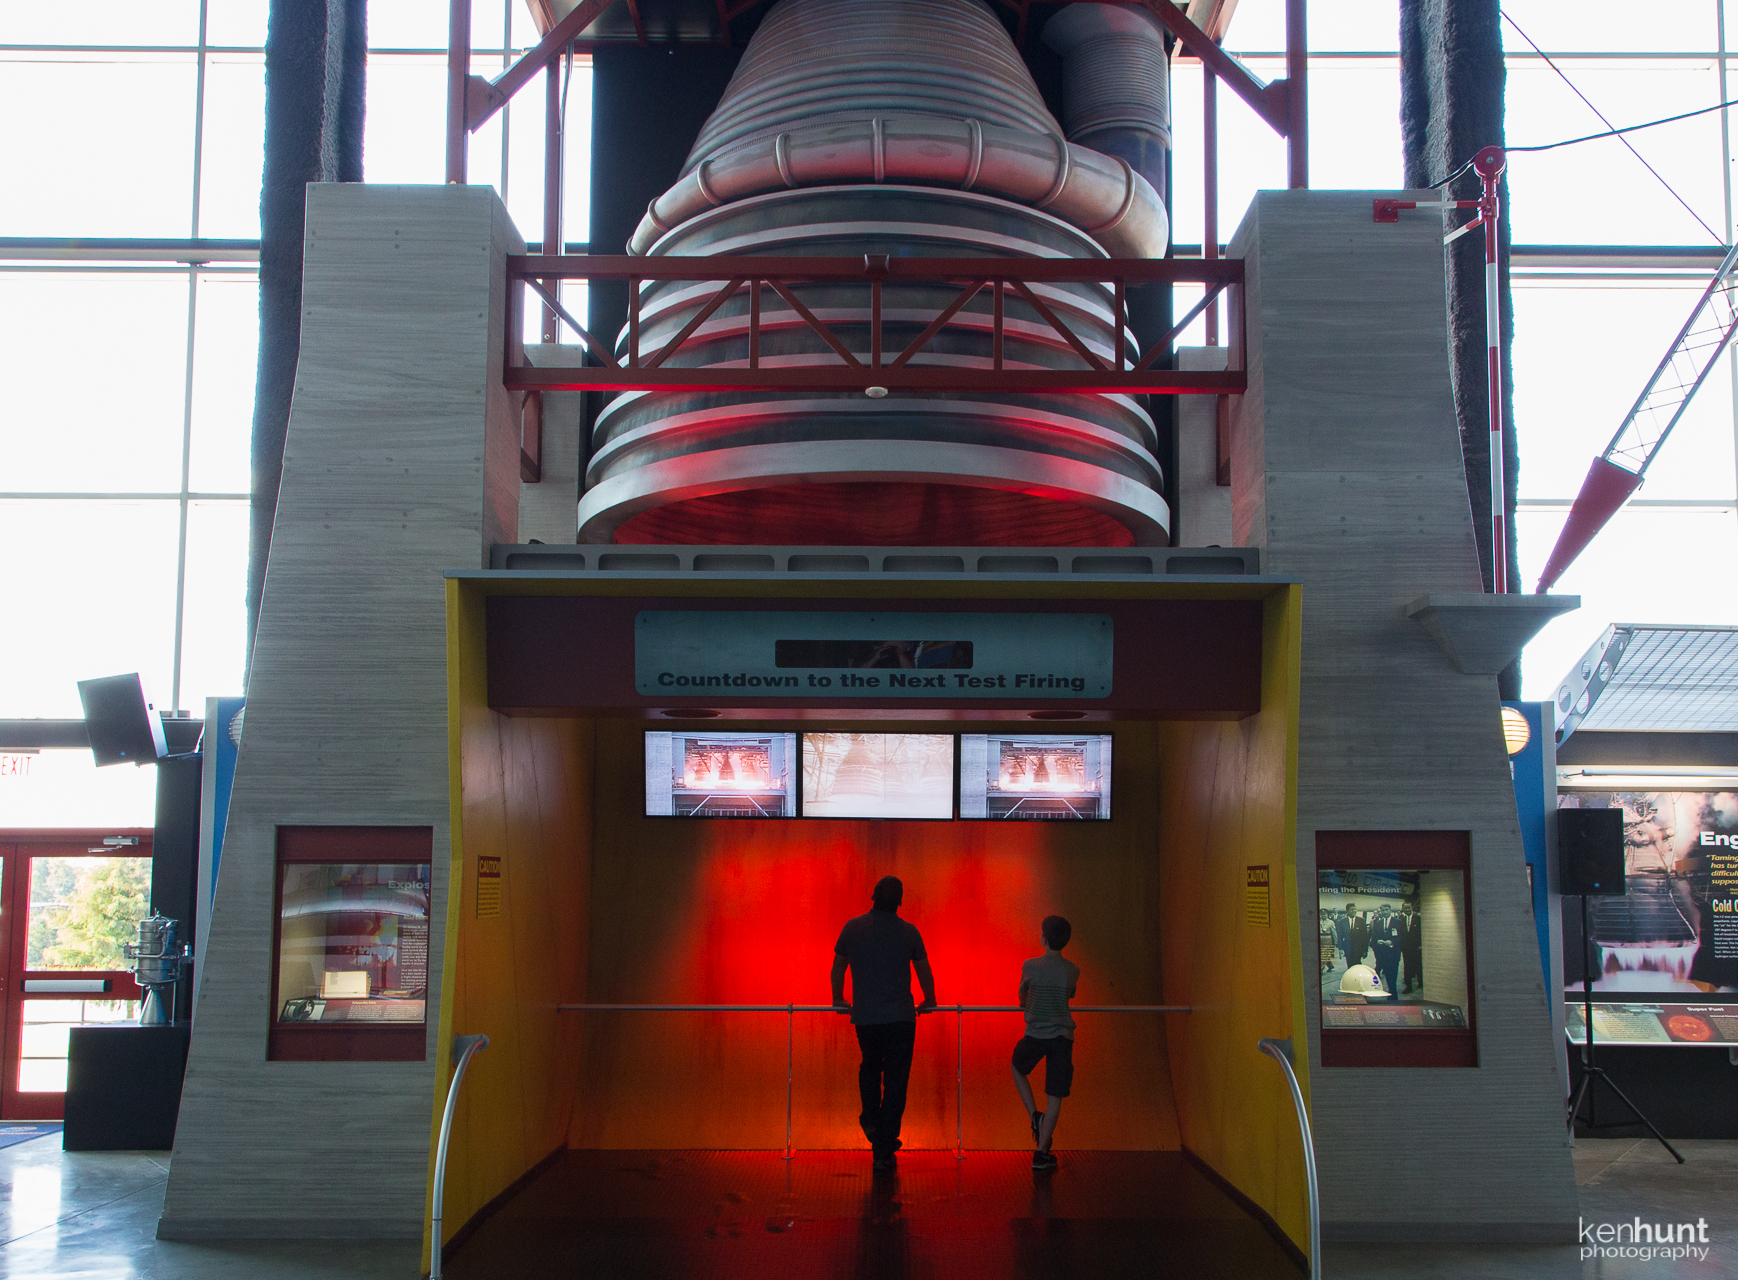 Space and Rocket Center IMAX Theater - Pics about space